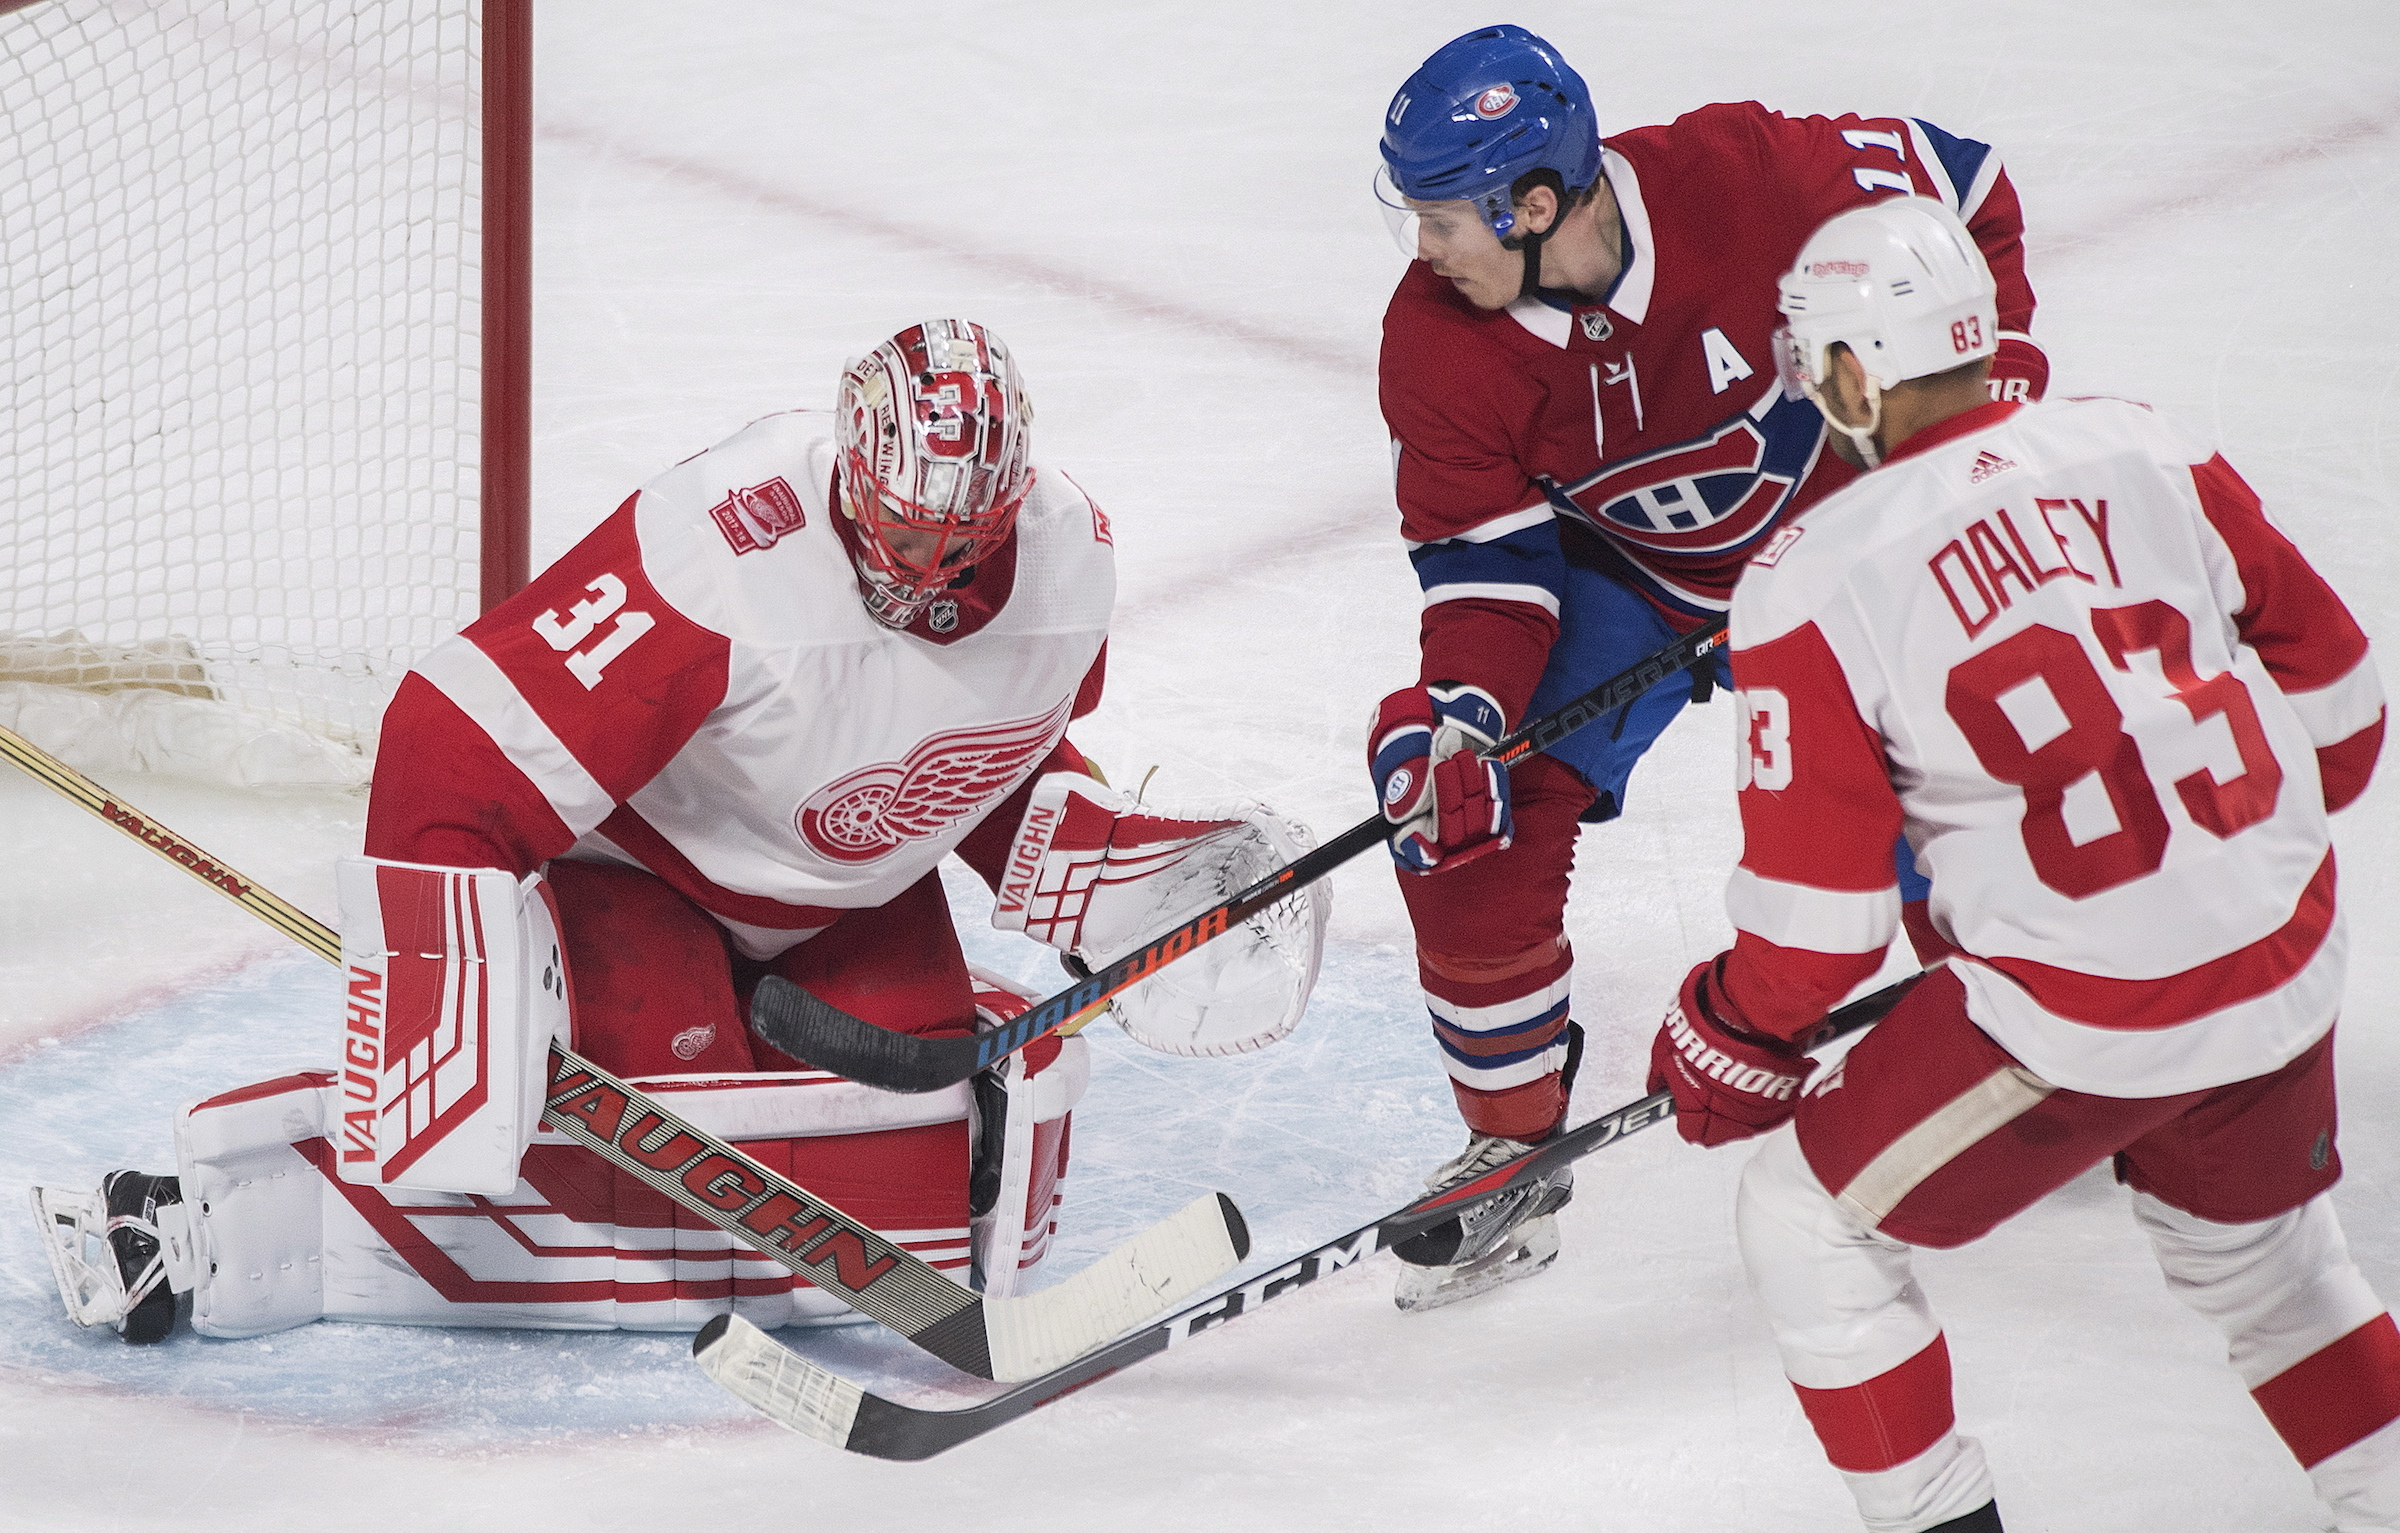 Montreal Canadiens right wing Brendan Gallagher (11) moves in against Detroit Red Wings goaltender Jared Coreau (31) as defenseman Trevor Daley (83) defends during third-period NHL hockey game action in Montreal, Monday, March 26, 2018. (Graham Hughes/The Canadian Press via AP)